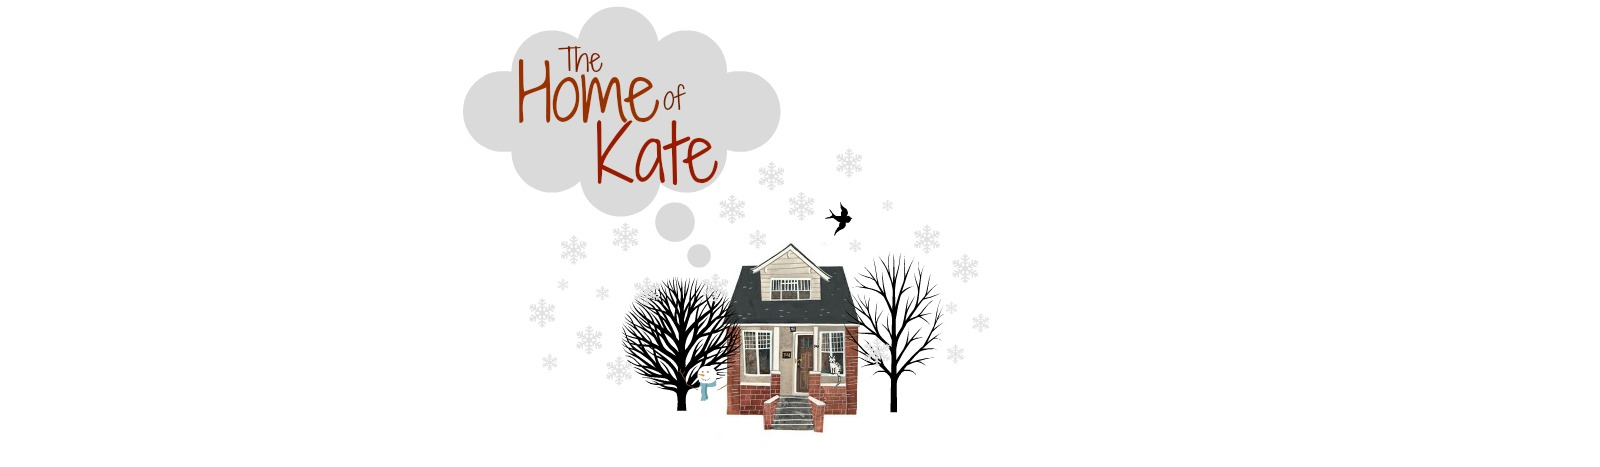 The Home of Kate